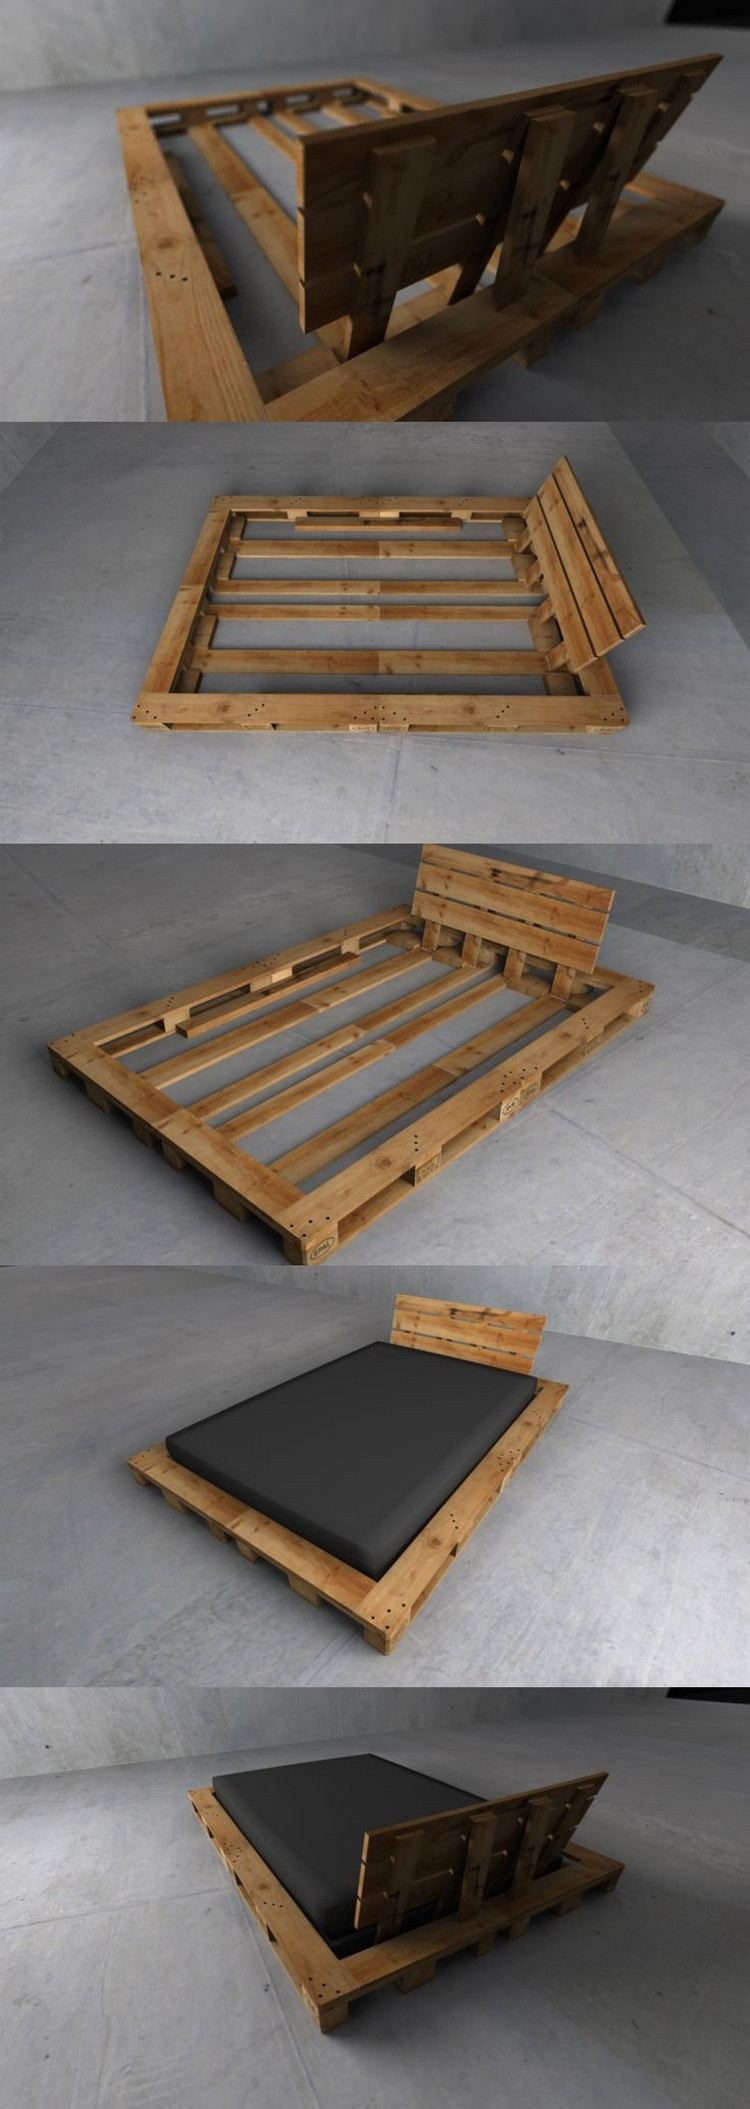 recycled wood pallet bed ideas pallet wood projects. Black Bedroom Furniture Sets. Home Design Ideas